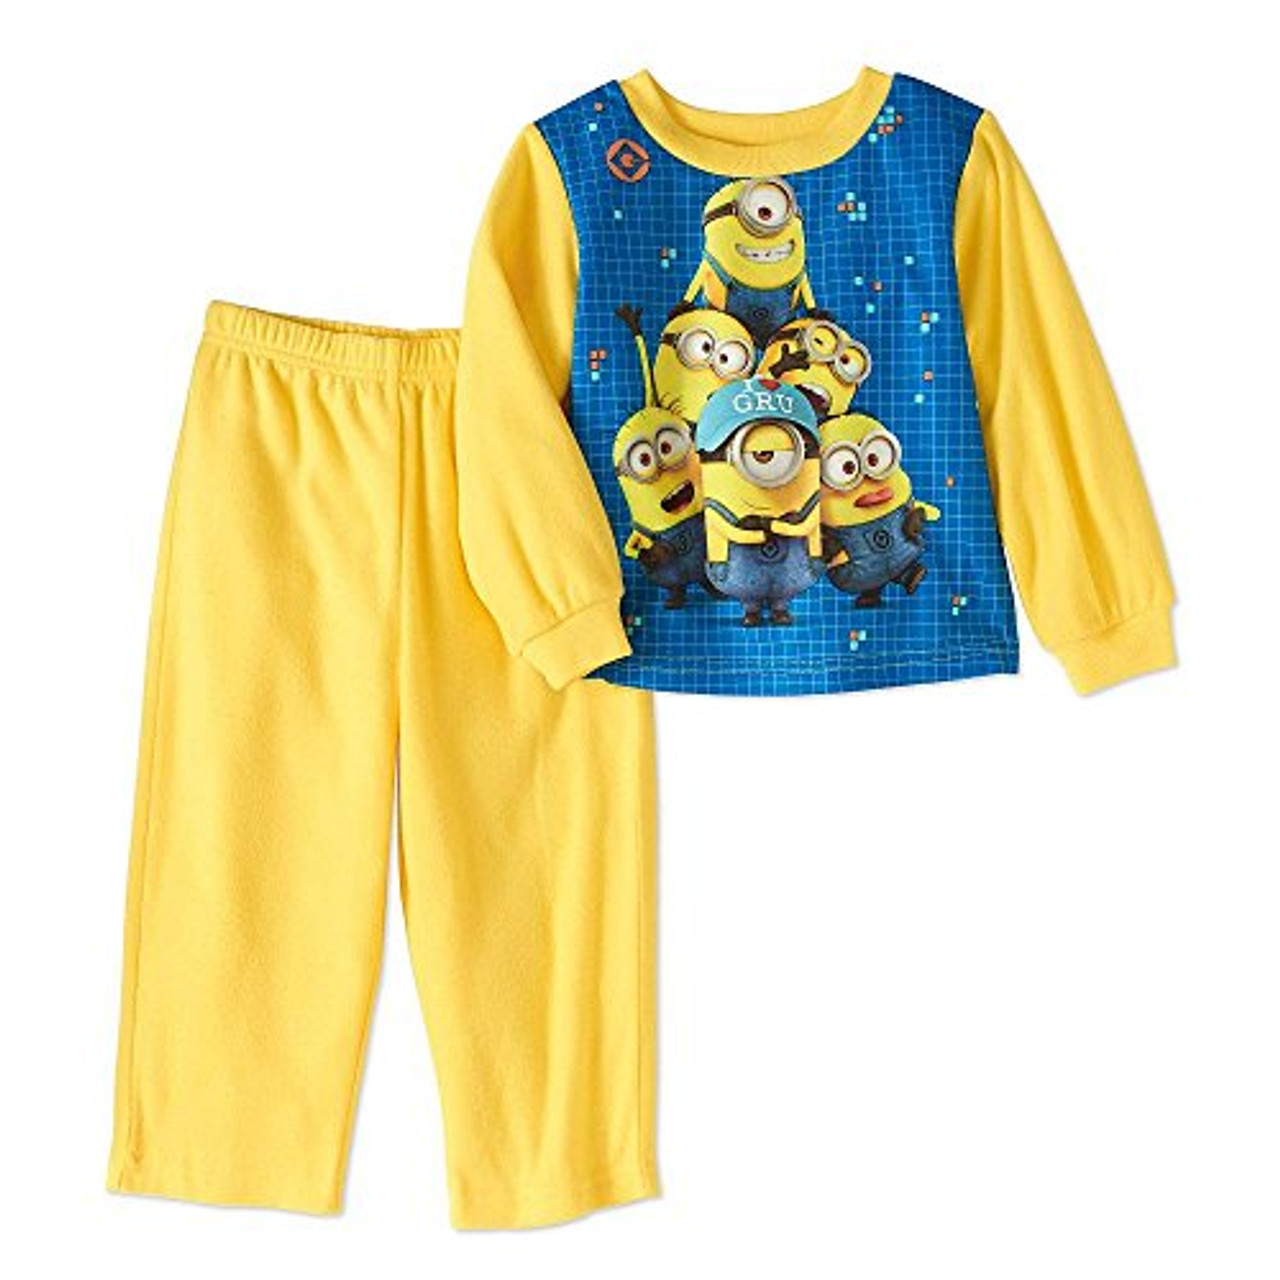 Despicable Me Boys Toddler I Love Gru Minions Flannel Pajama Set